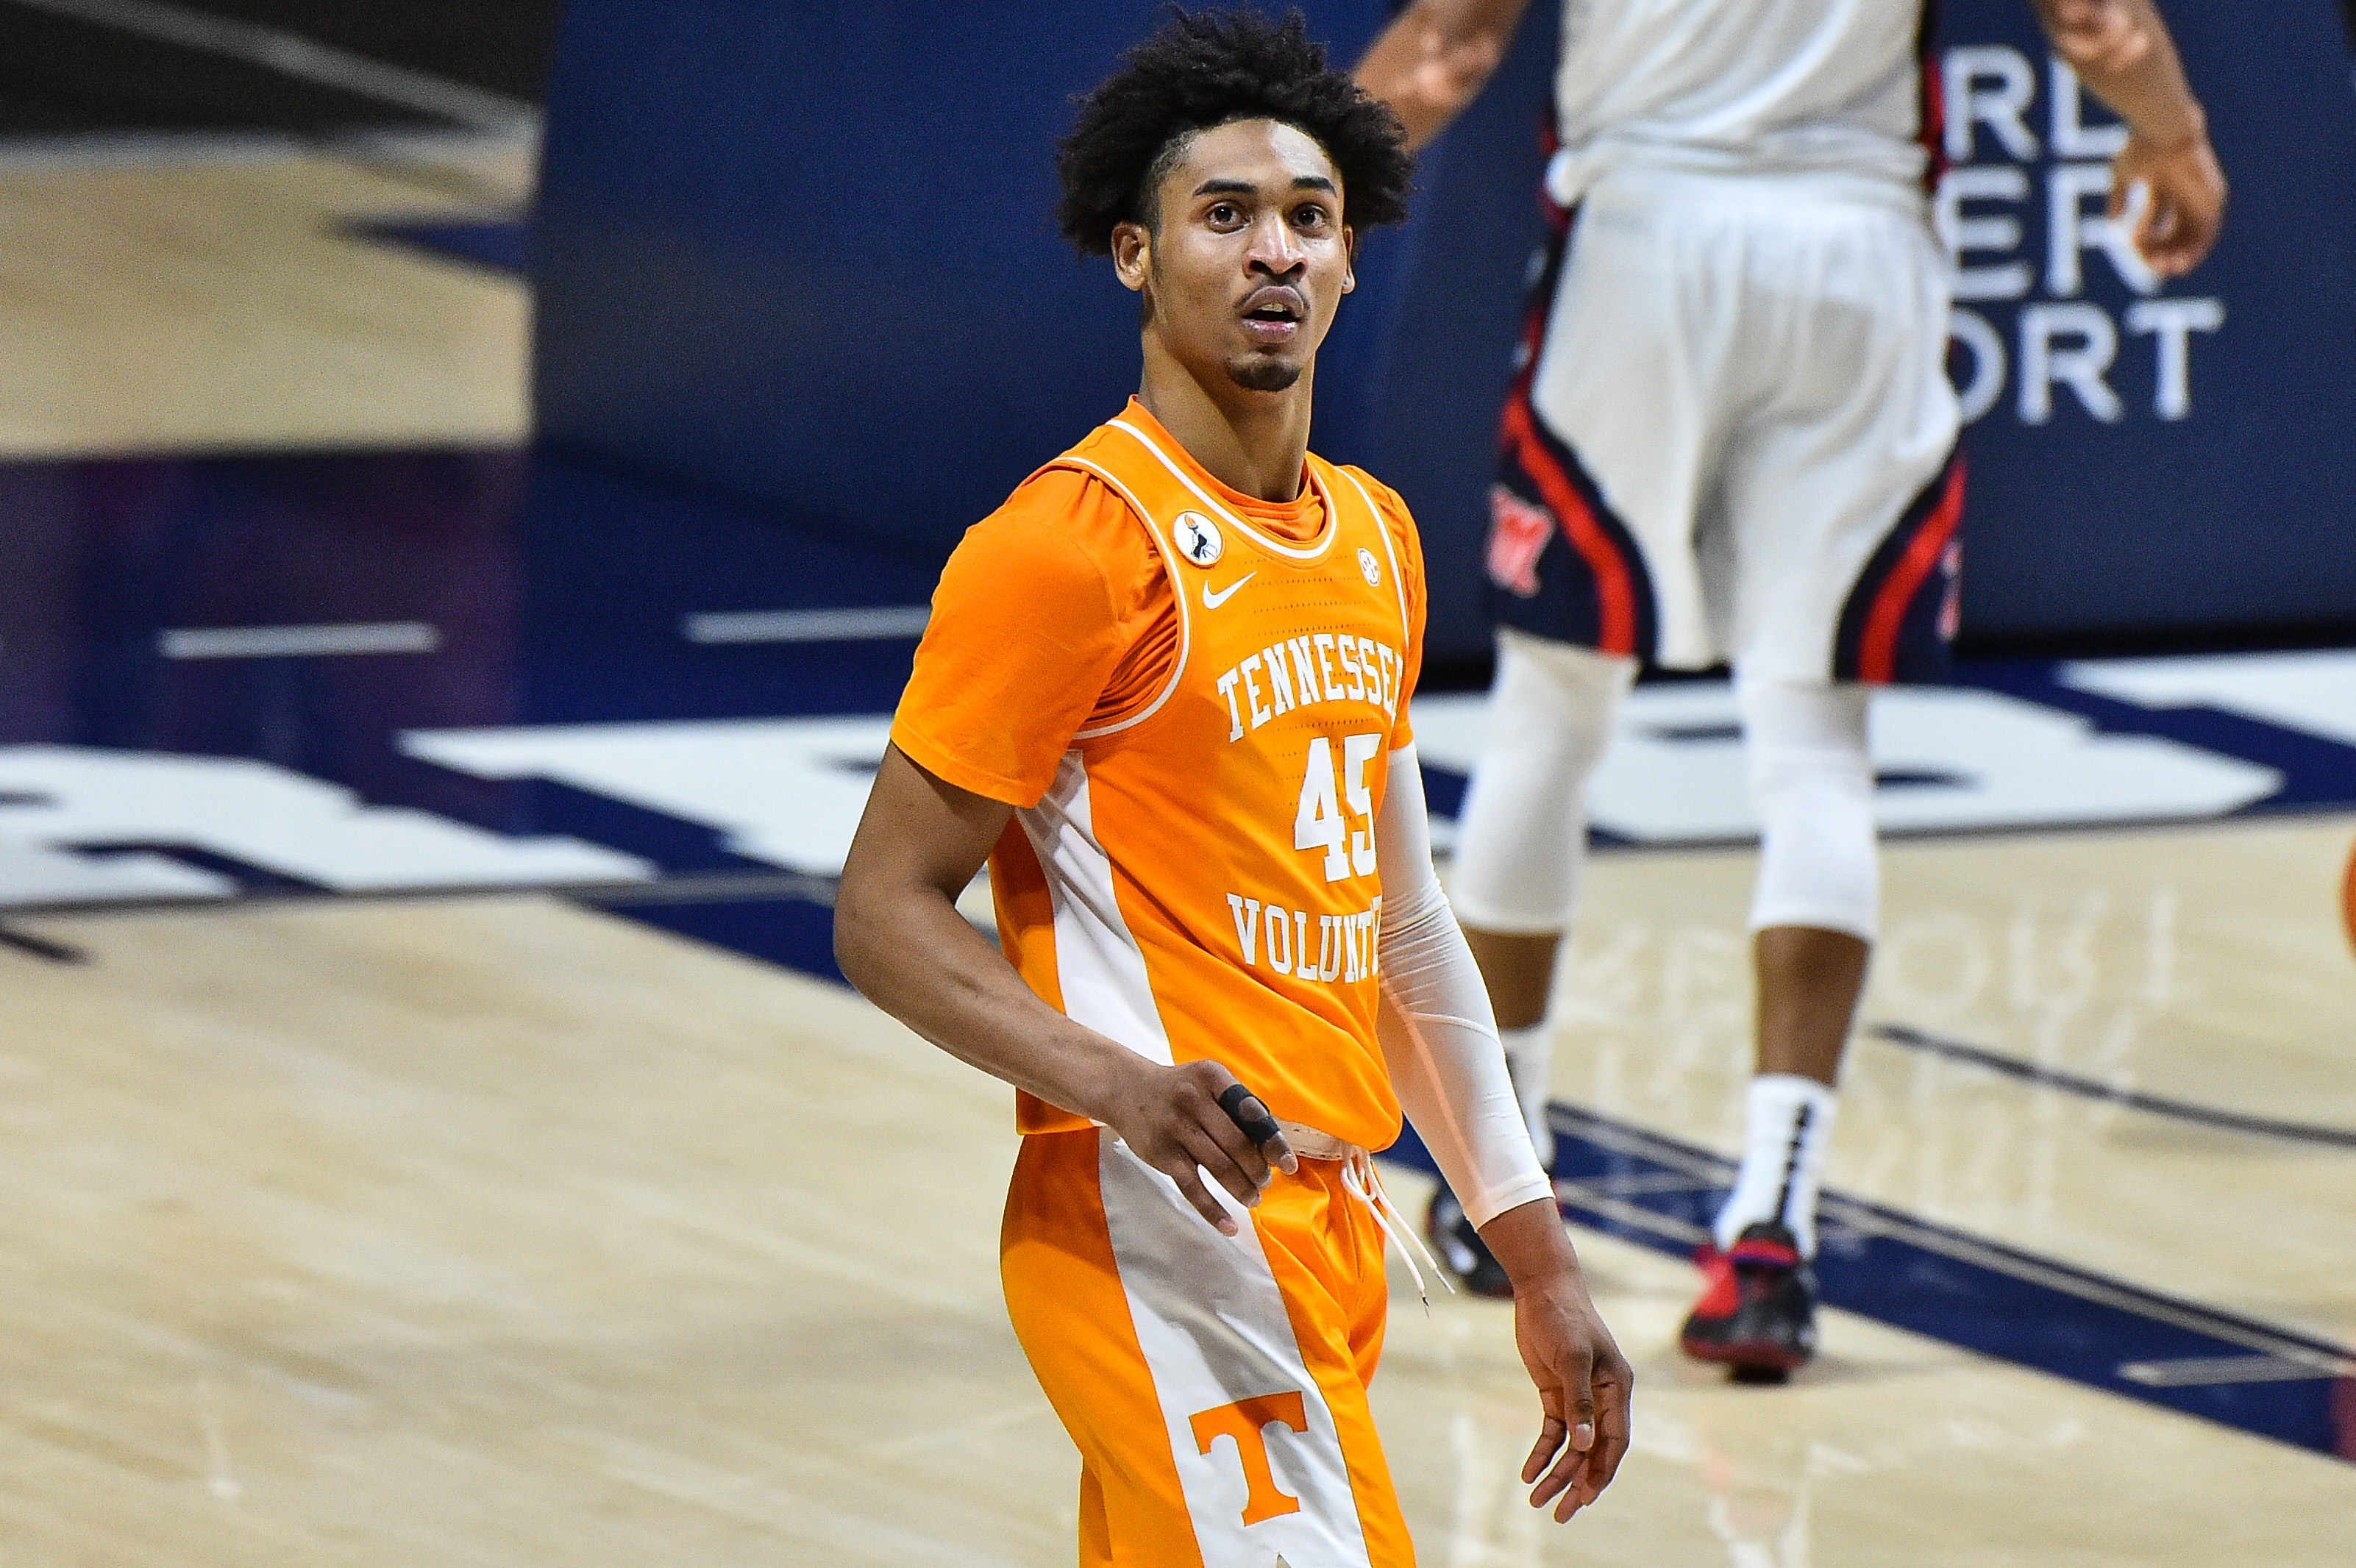 Feb 2, 2021; Oxford, Mississippi, USA; Tennessee Volunteers guard Keon Johnson (45) during the game against the Mississippi Rebels at The Pavilion at Ole Miss.